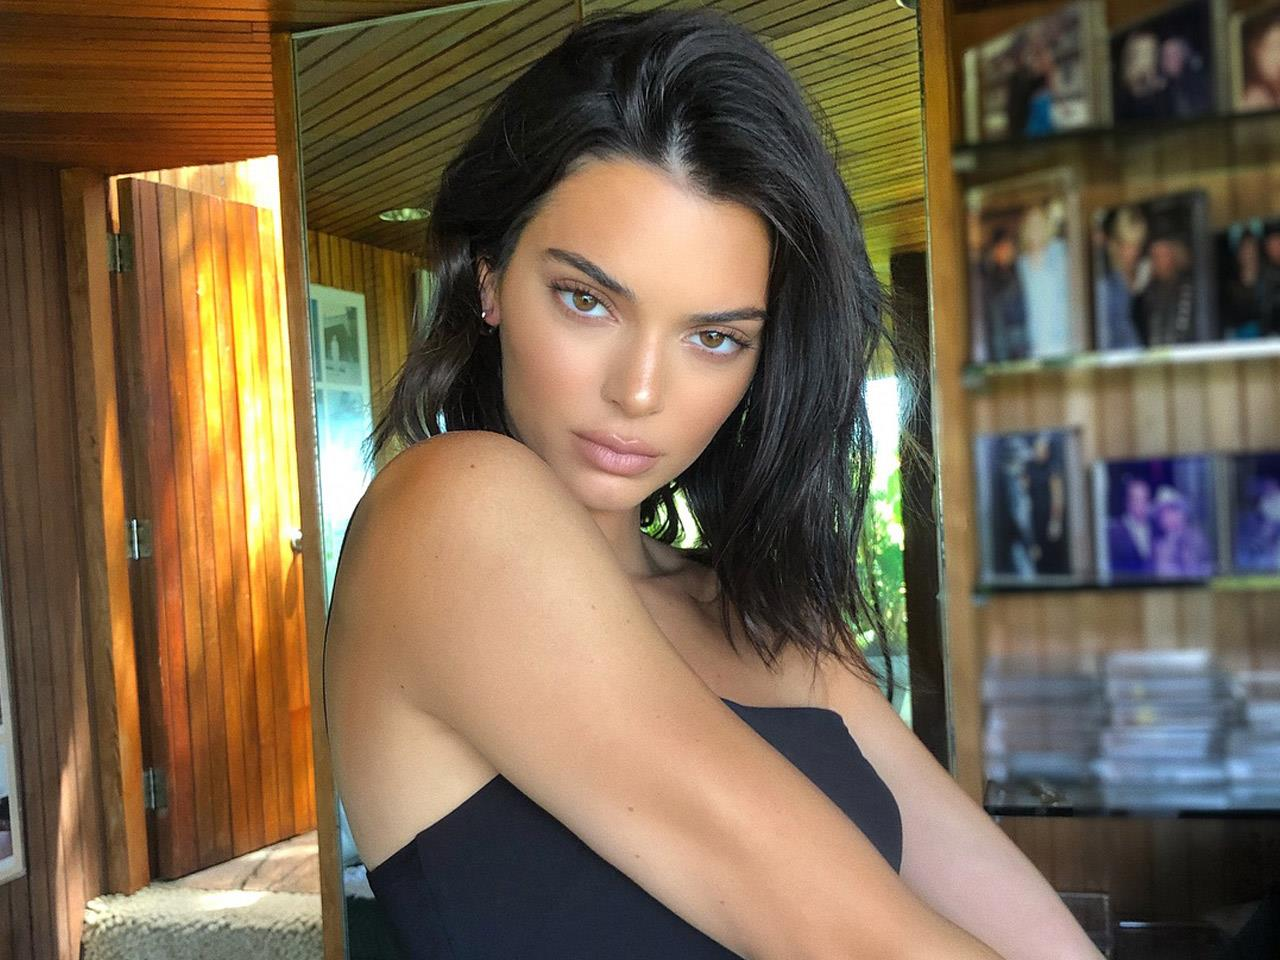 From being on the covers of hundreds of m. Kendall Jenner Pregunta En Instagram Si Su Nuevo Flequillo Le Queda Bien